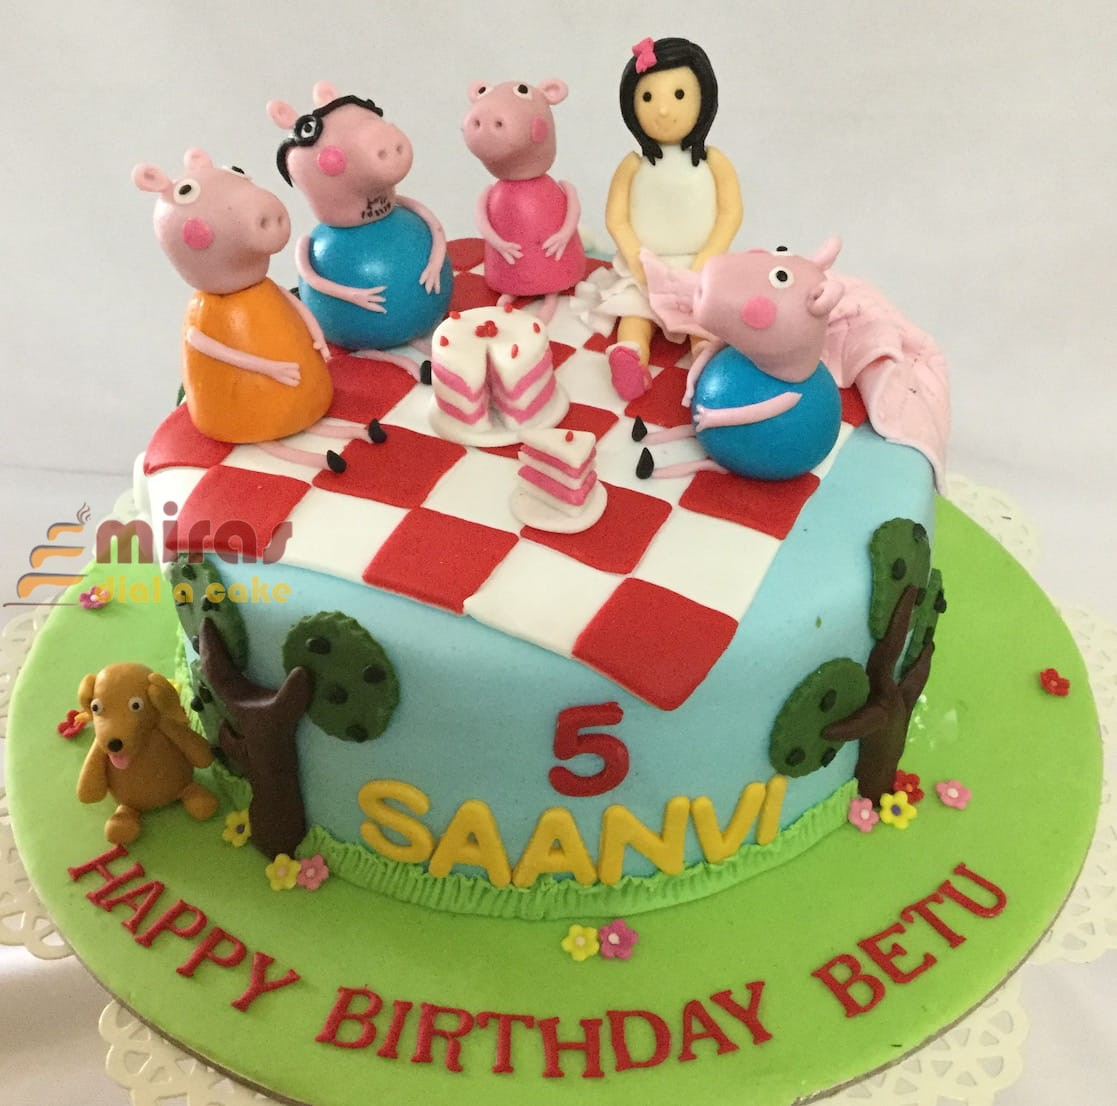 Saanvis 5th Birthday Peppa Pig Cake 15kg 2850jpeg